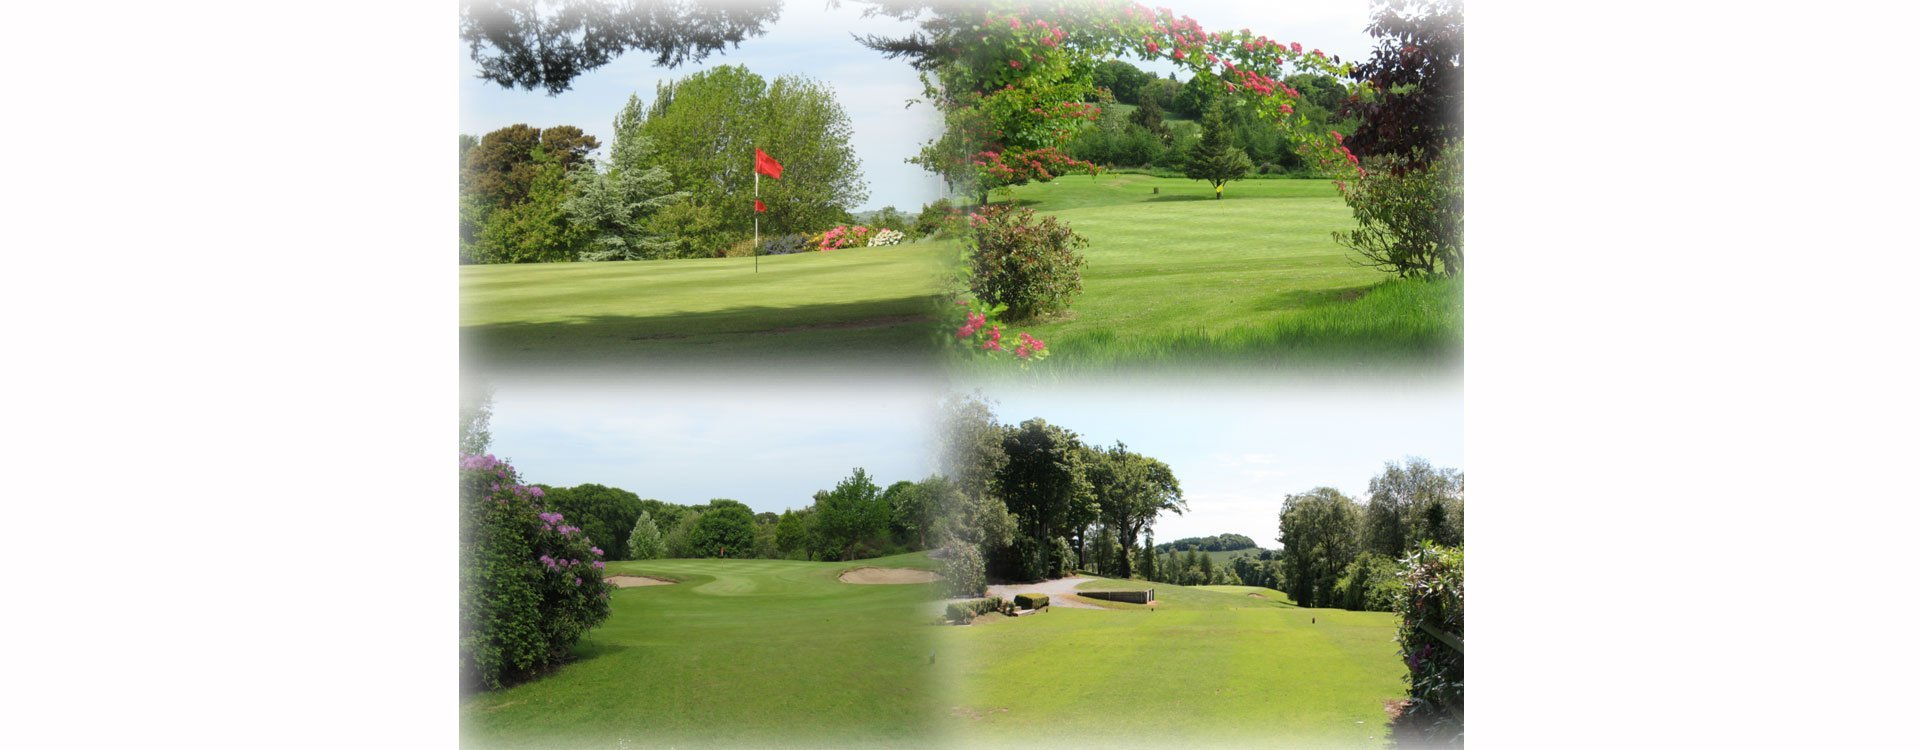 different views of the golf area